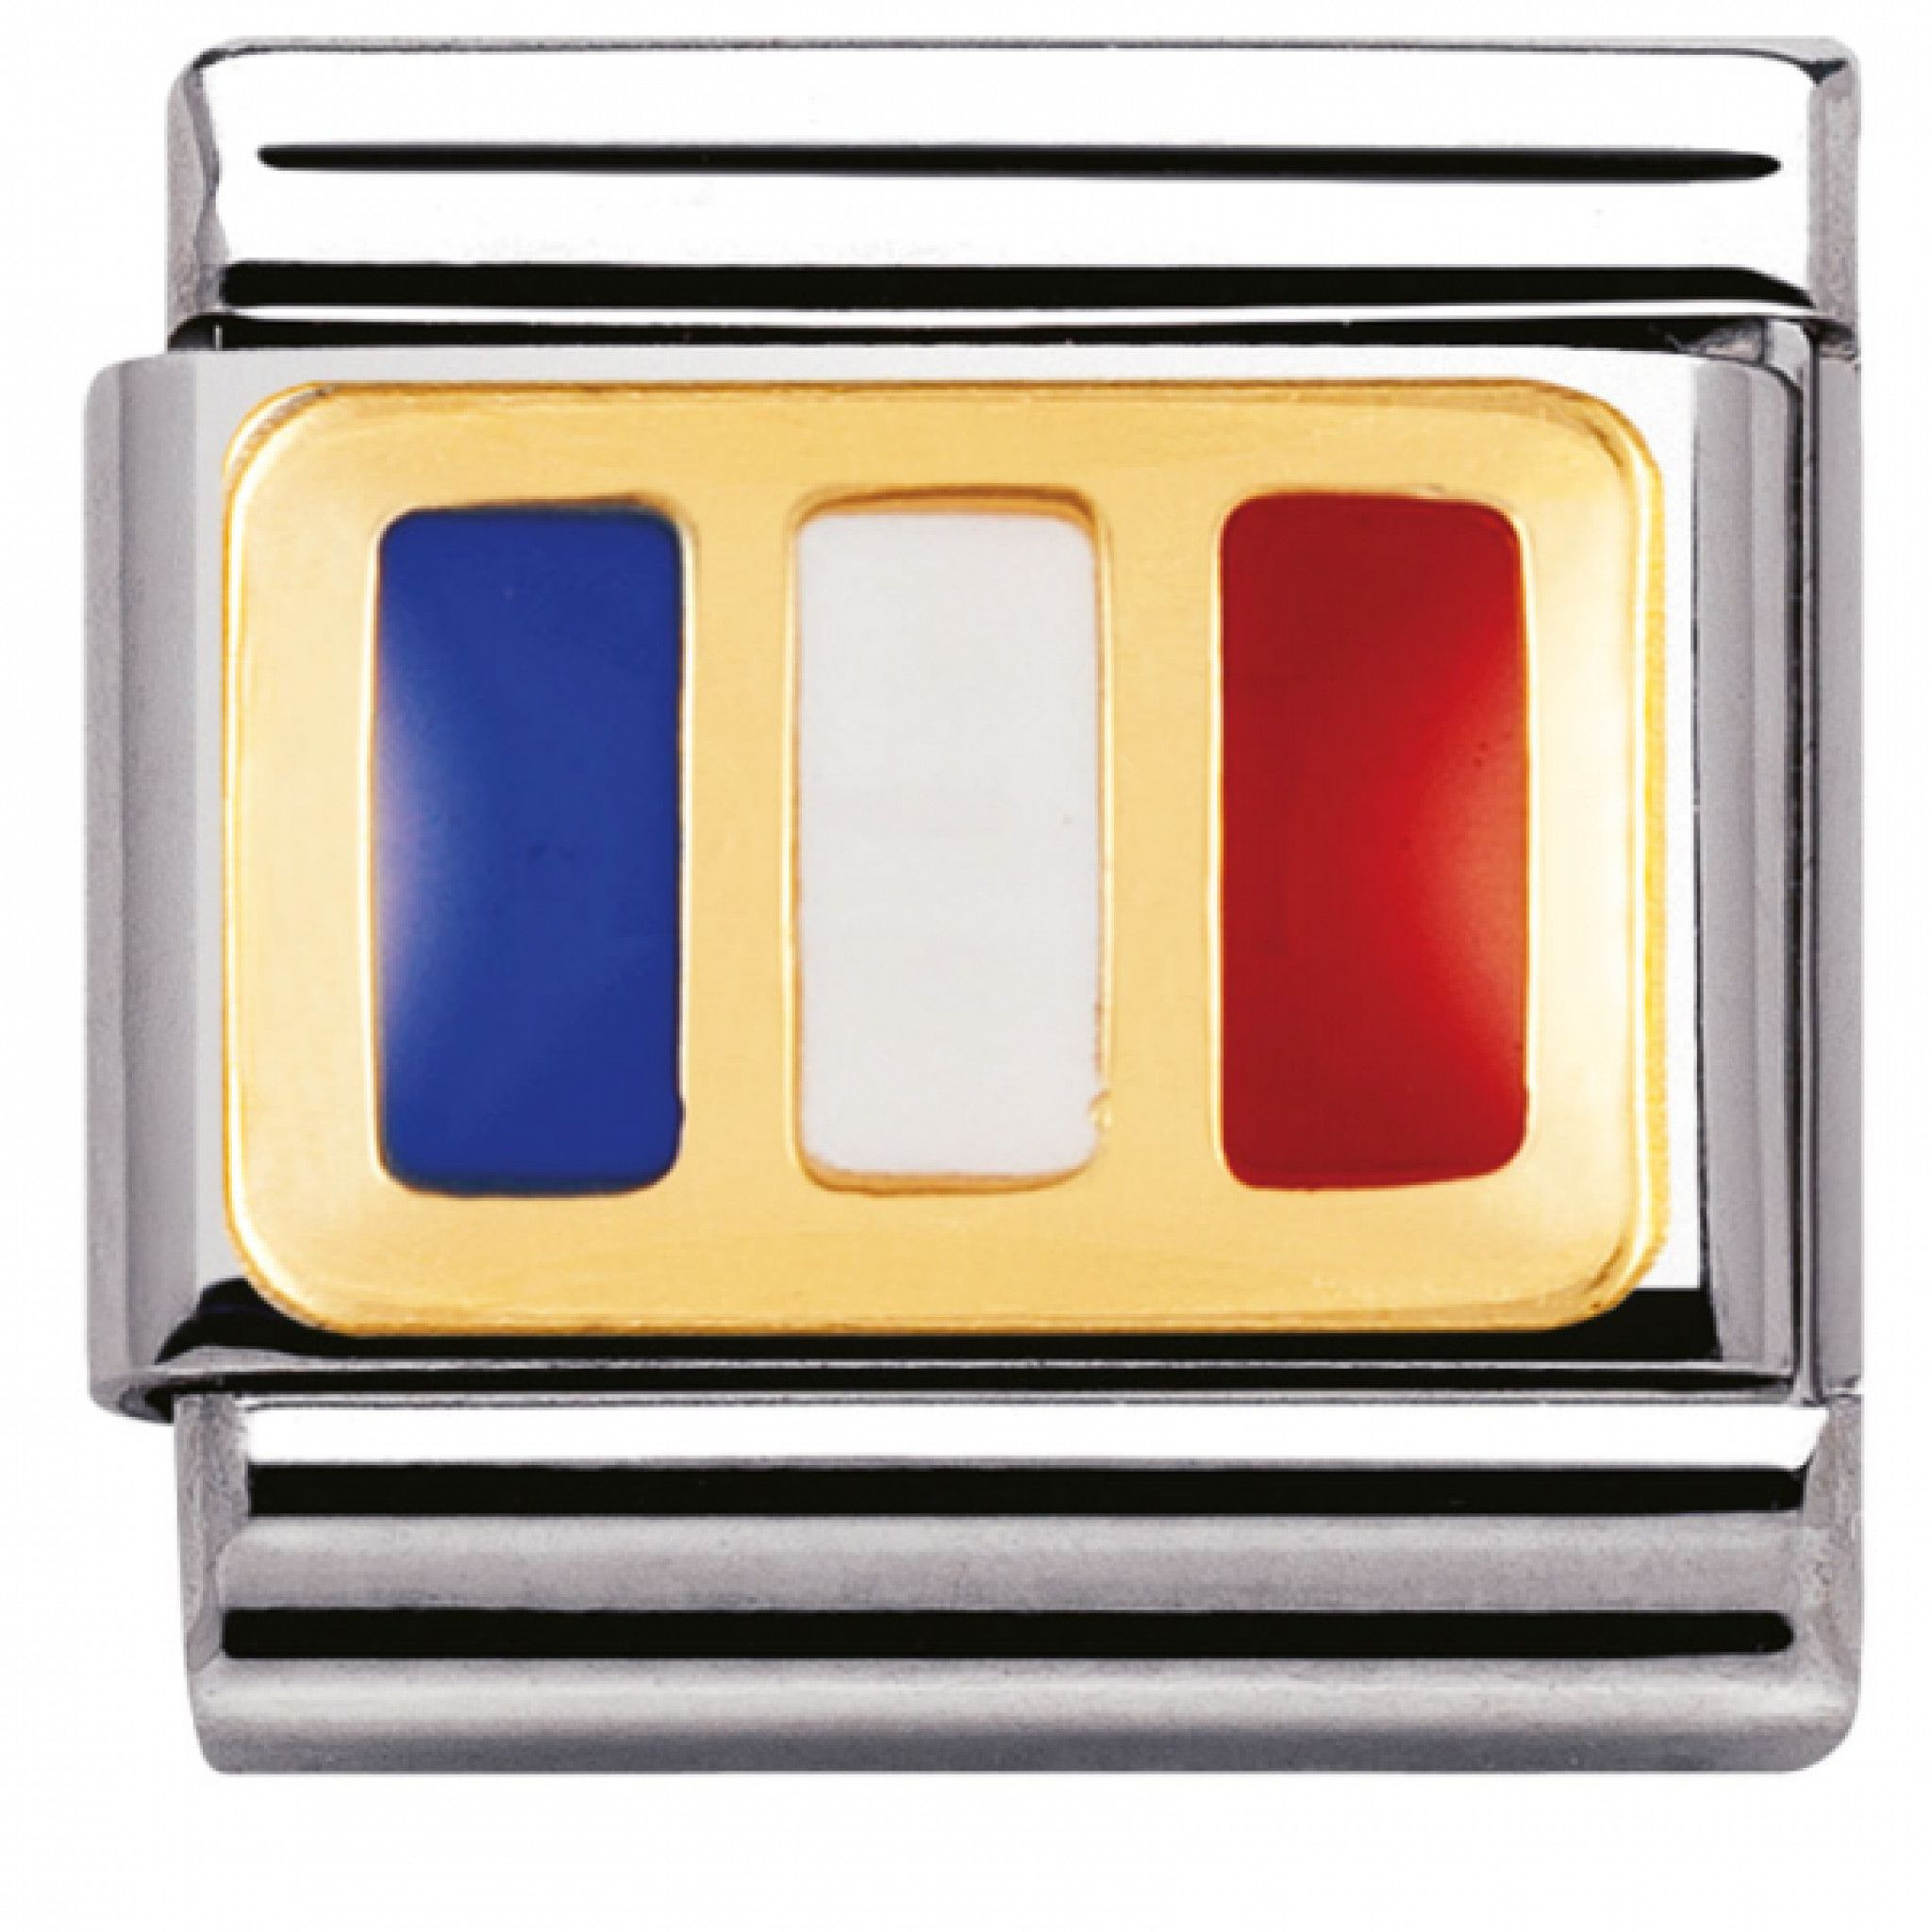 Nomination Composable Classic Letter G Stainless Steel and 18K Gold RNUqSrd4